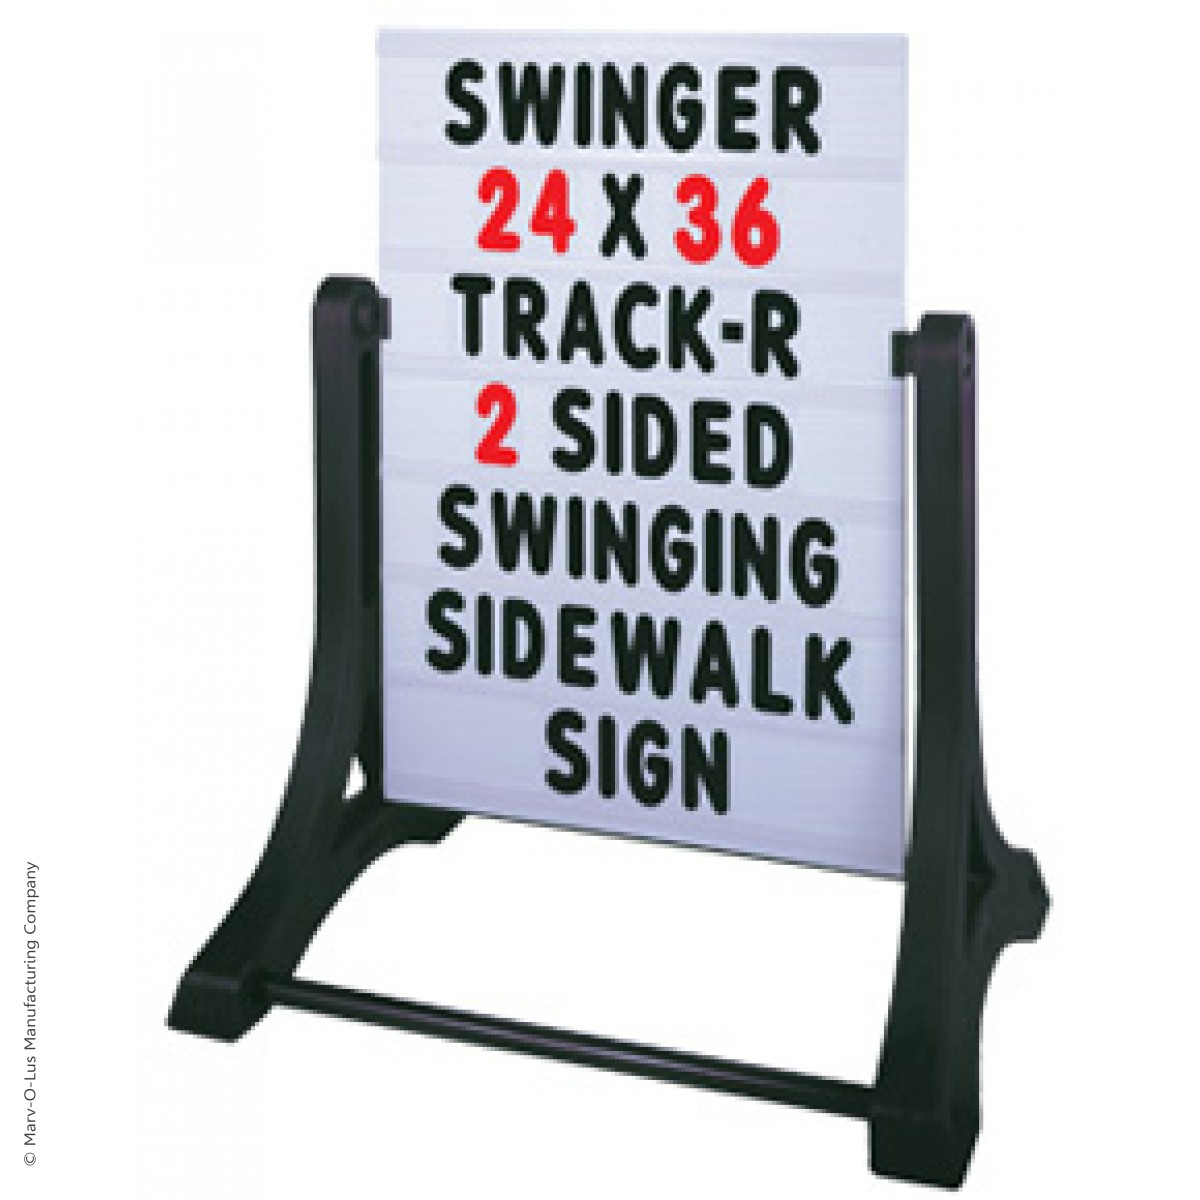 inch letters for changeable sidewalk signs message board sidewalk sign with changeable 2